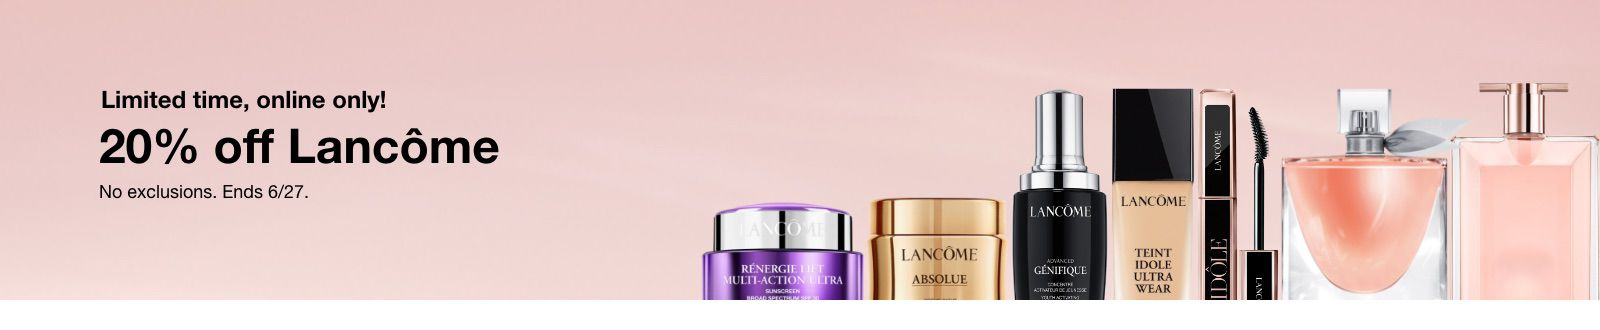 Limited time, online only! 20% off Lancome, Ends 6/27